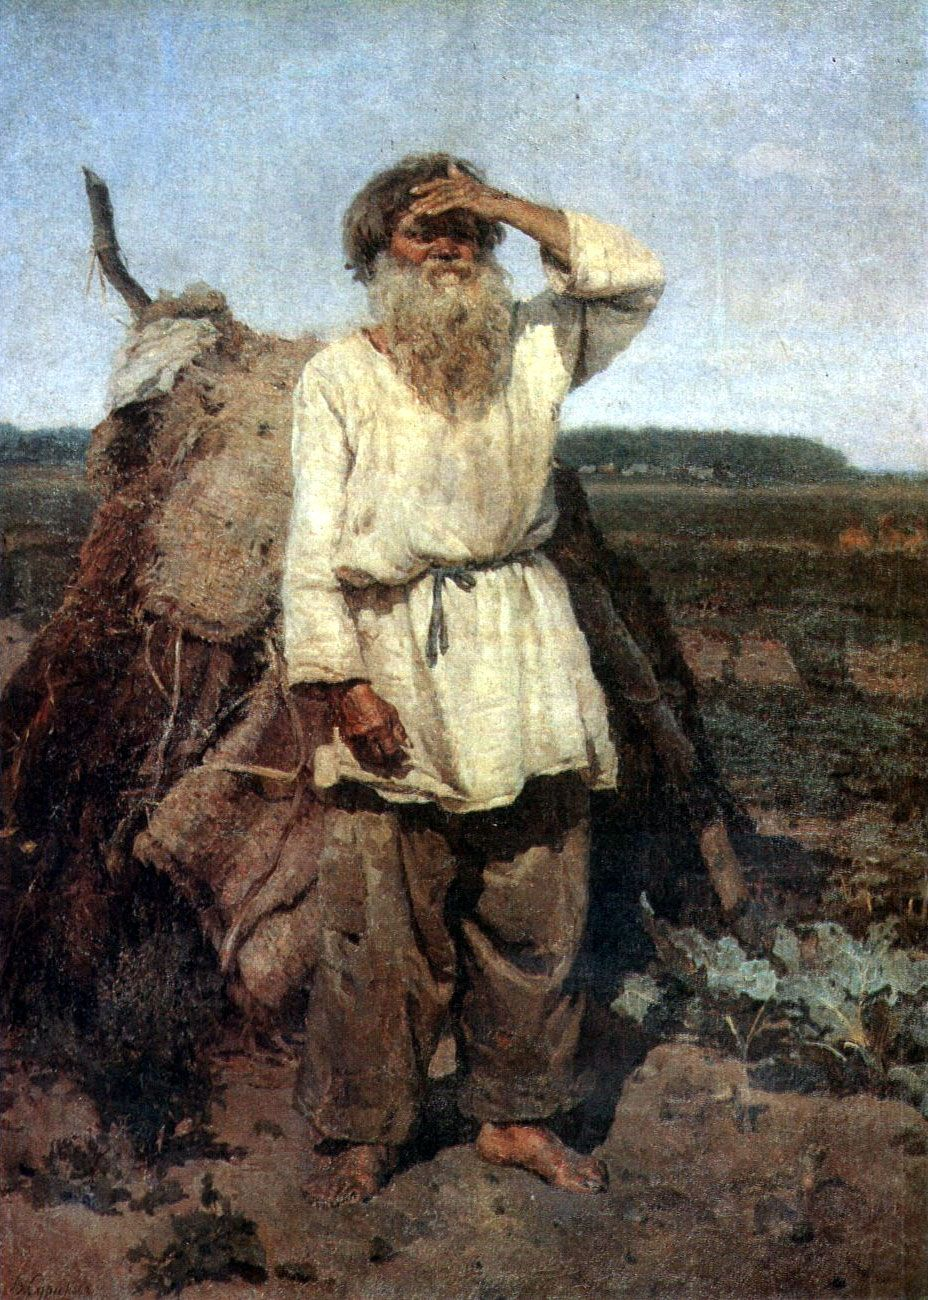 vasily surikov paintings the old gardener